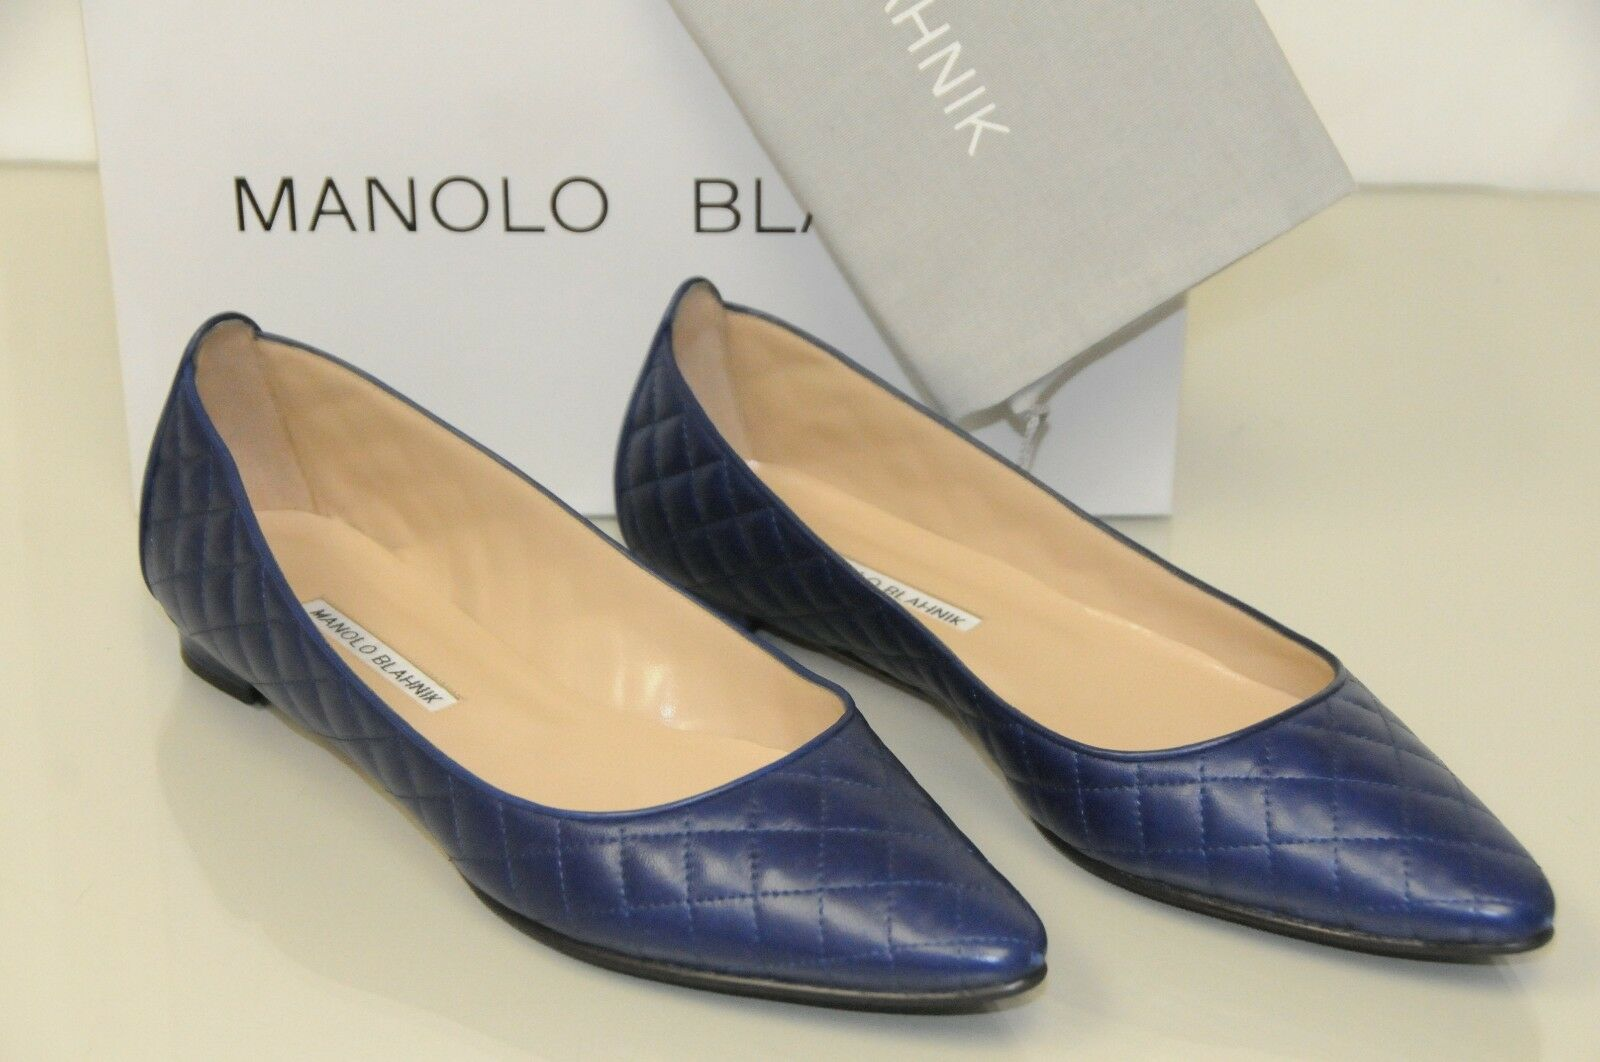 $735 NEW MANOLO BLAHNIK ABAT QUILTED FLATS LEATHER BLUE BALLERINA Fla SHOES 40.5